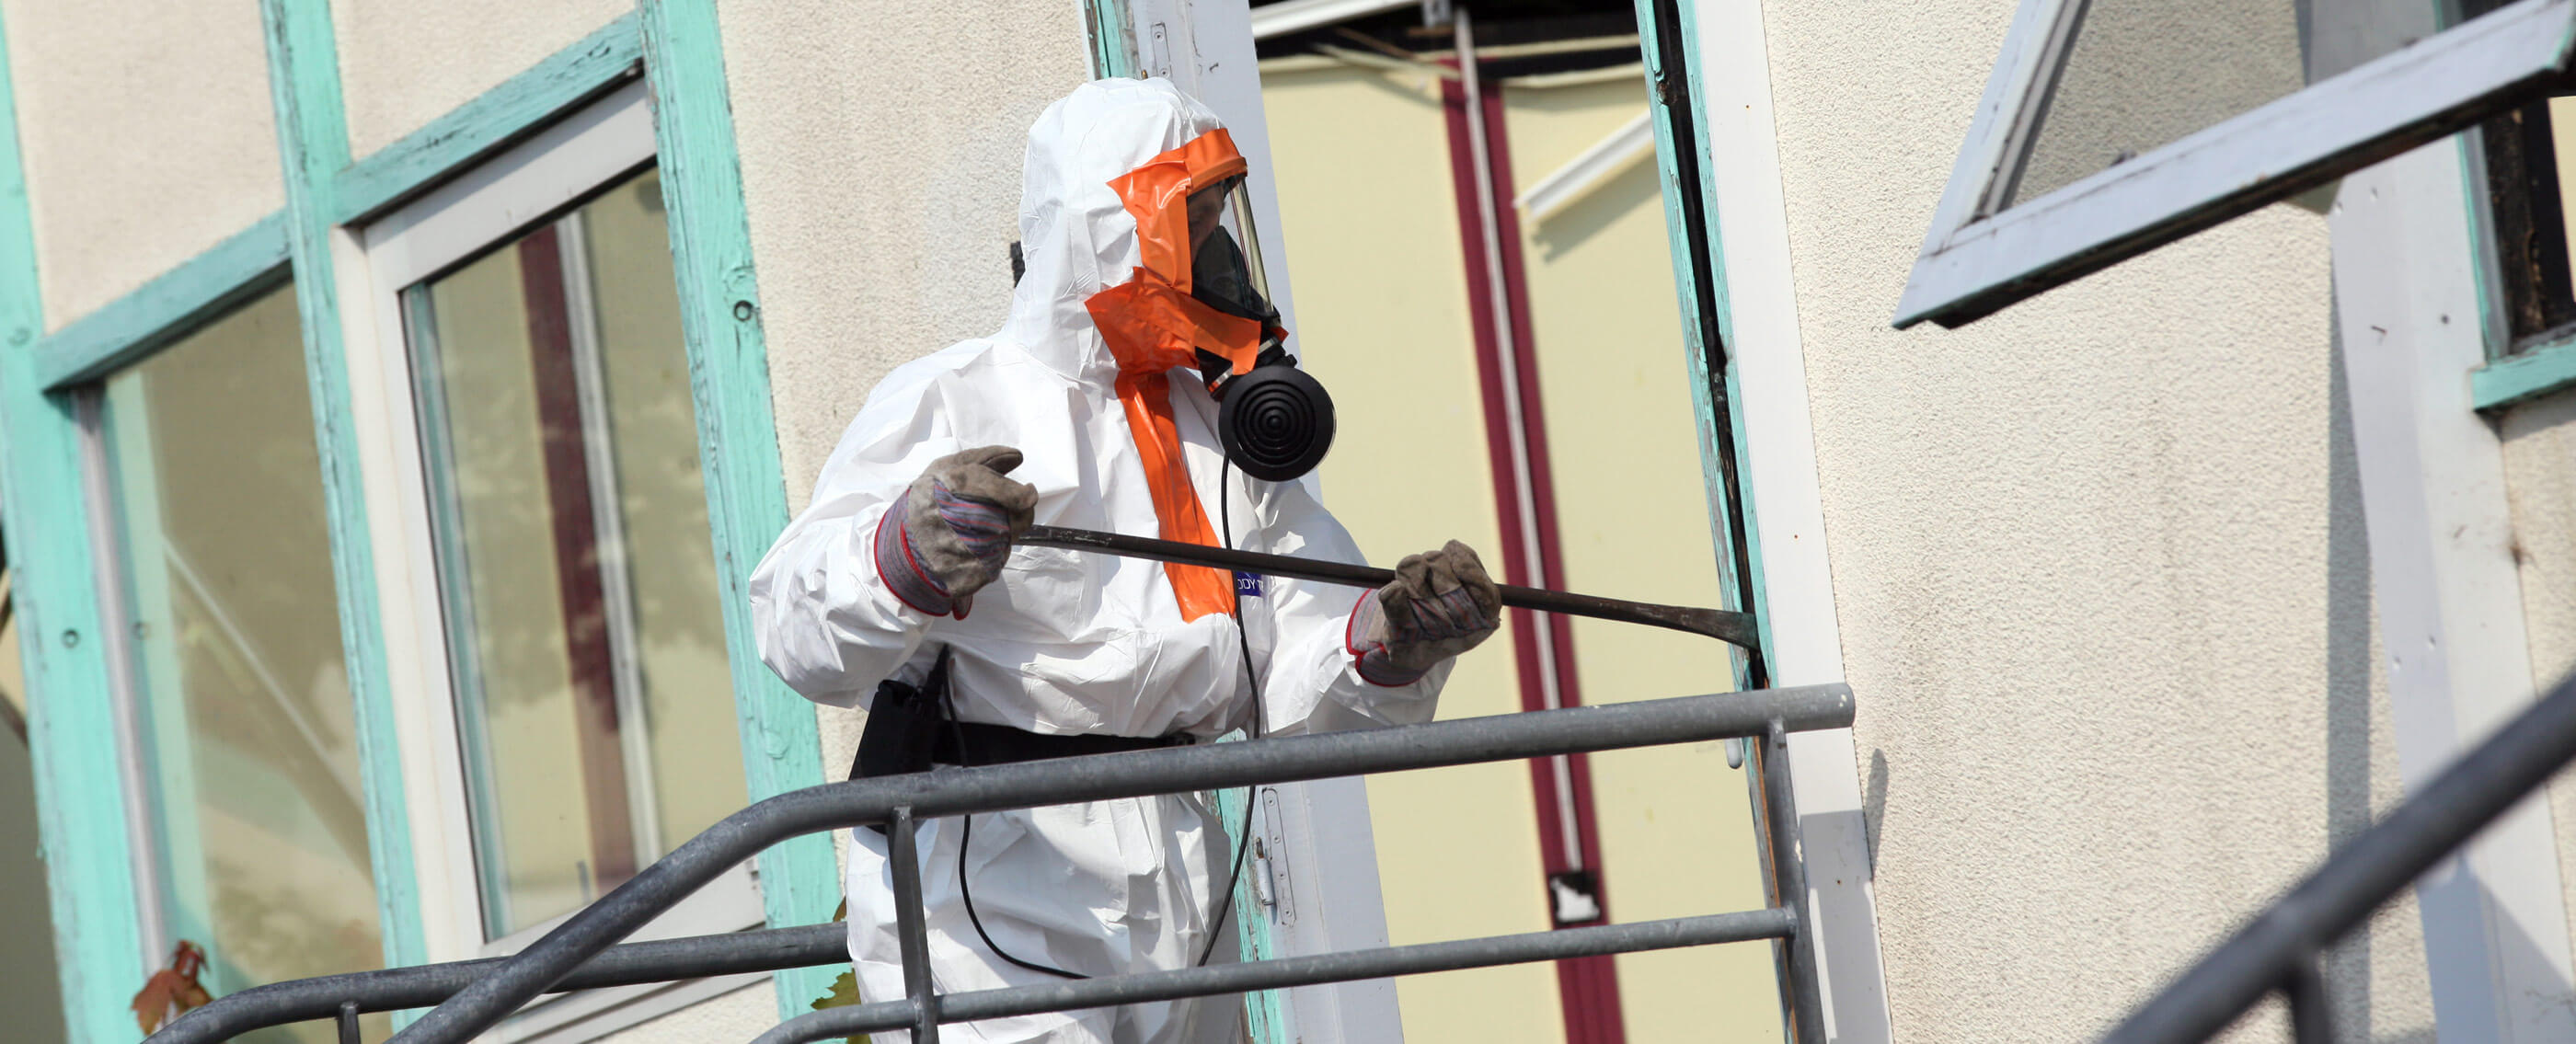 Asbestos Removal man in protective suit